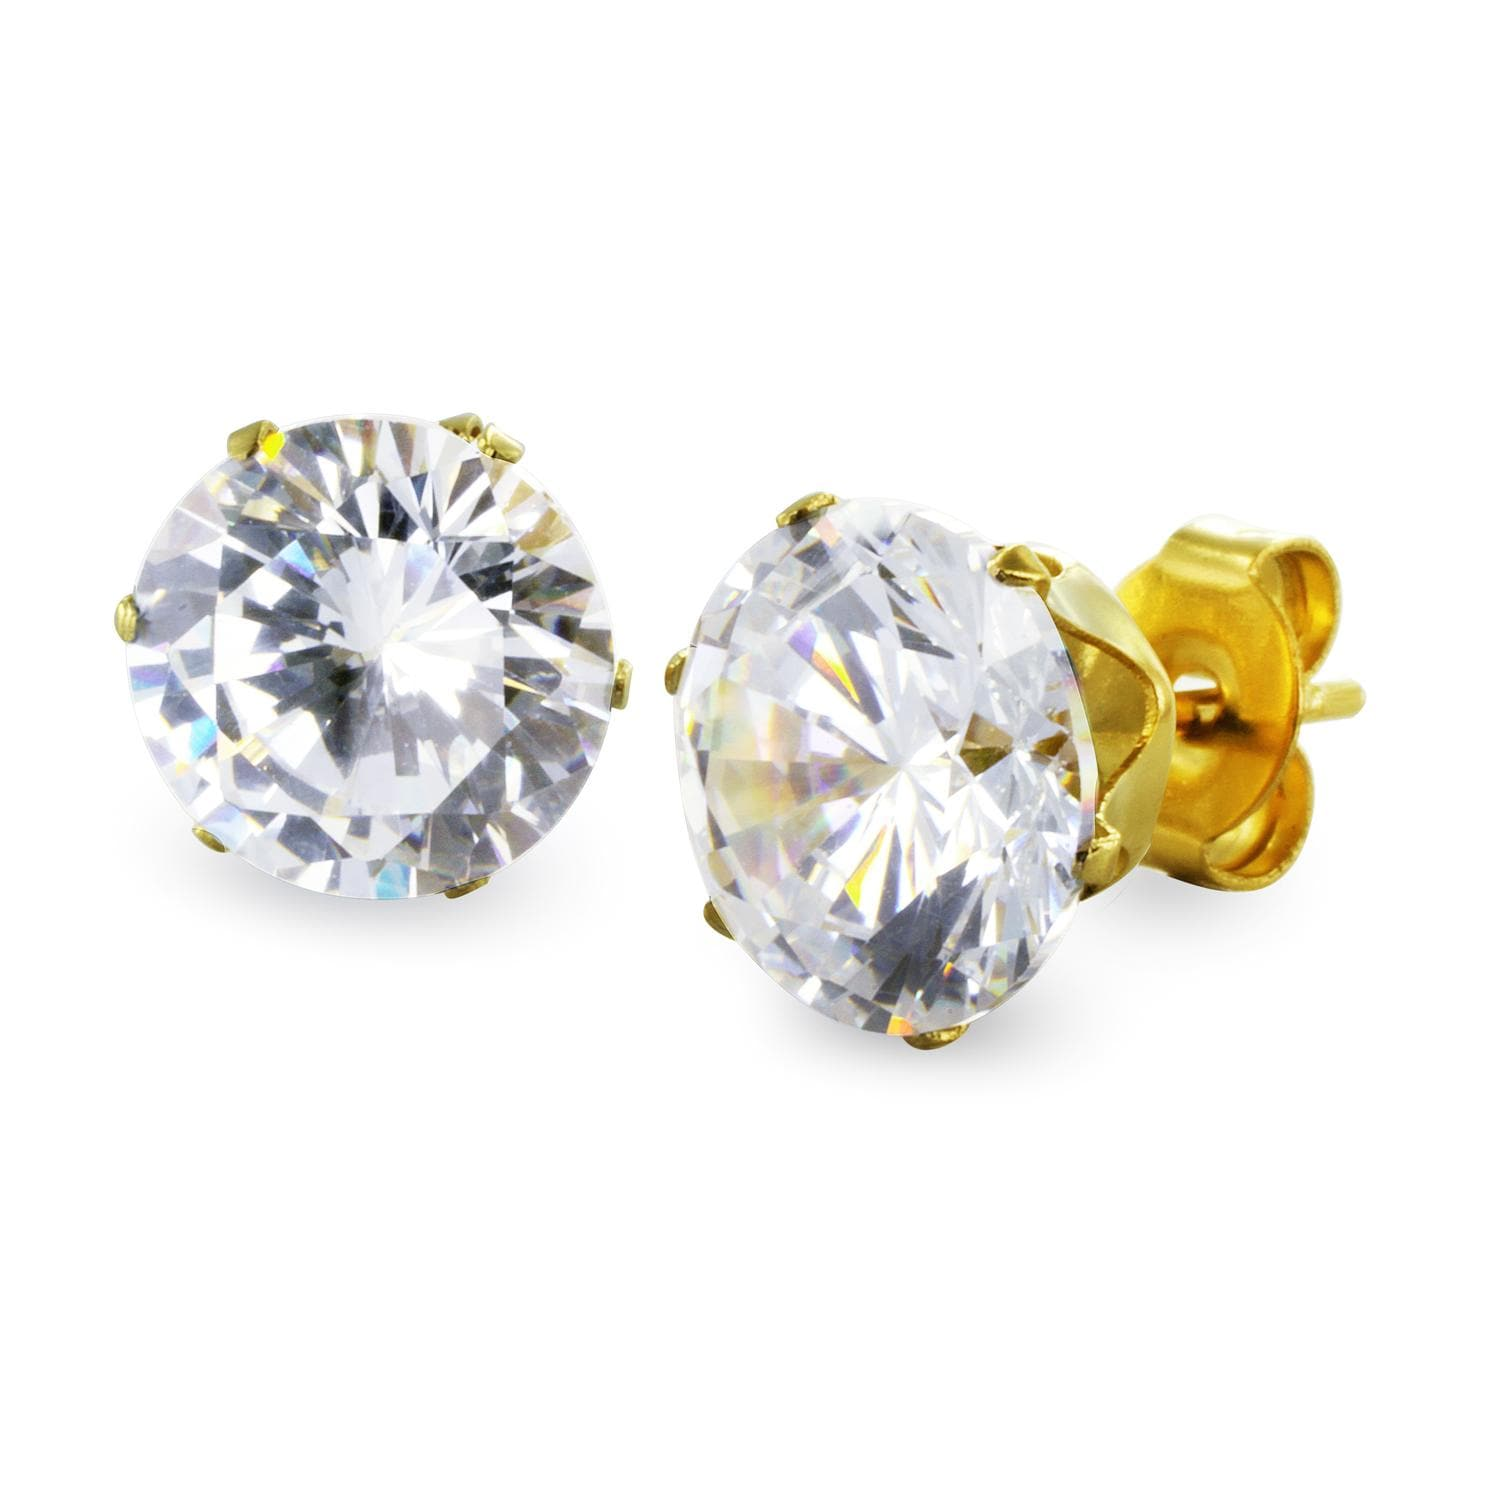 Gold Plated Stainless Steel Stud Earrings with Round Clear CZ - 8 mm